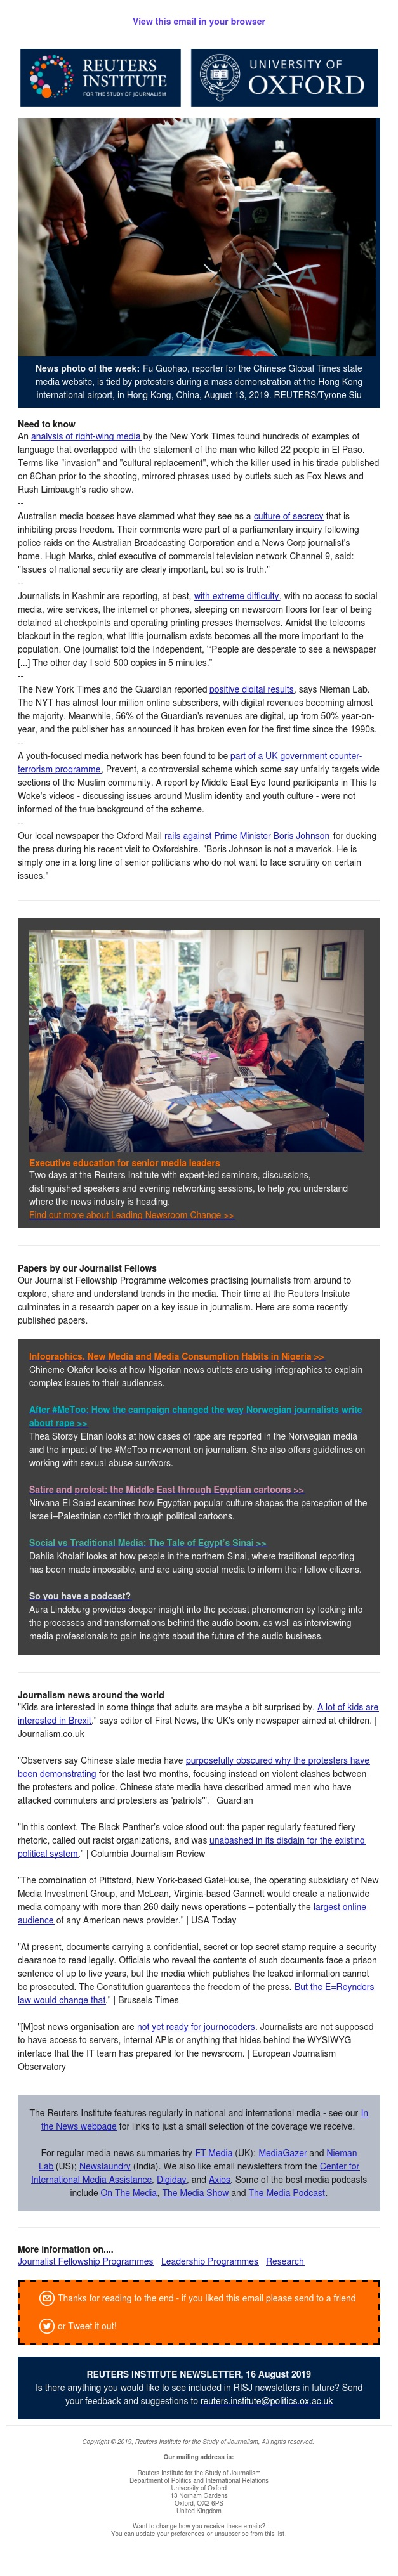 Media Freedom in Australia, Kashmir, Belgium | Papers by Journalist Fellows | Mergers and financial success + more...